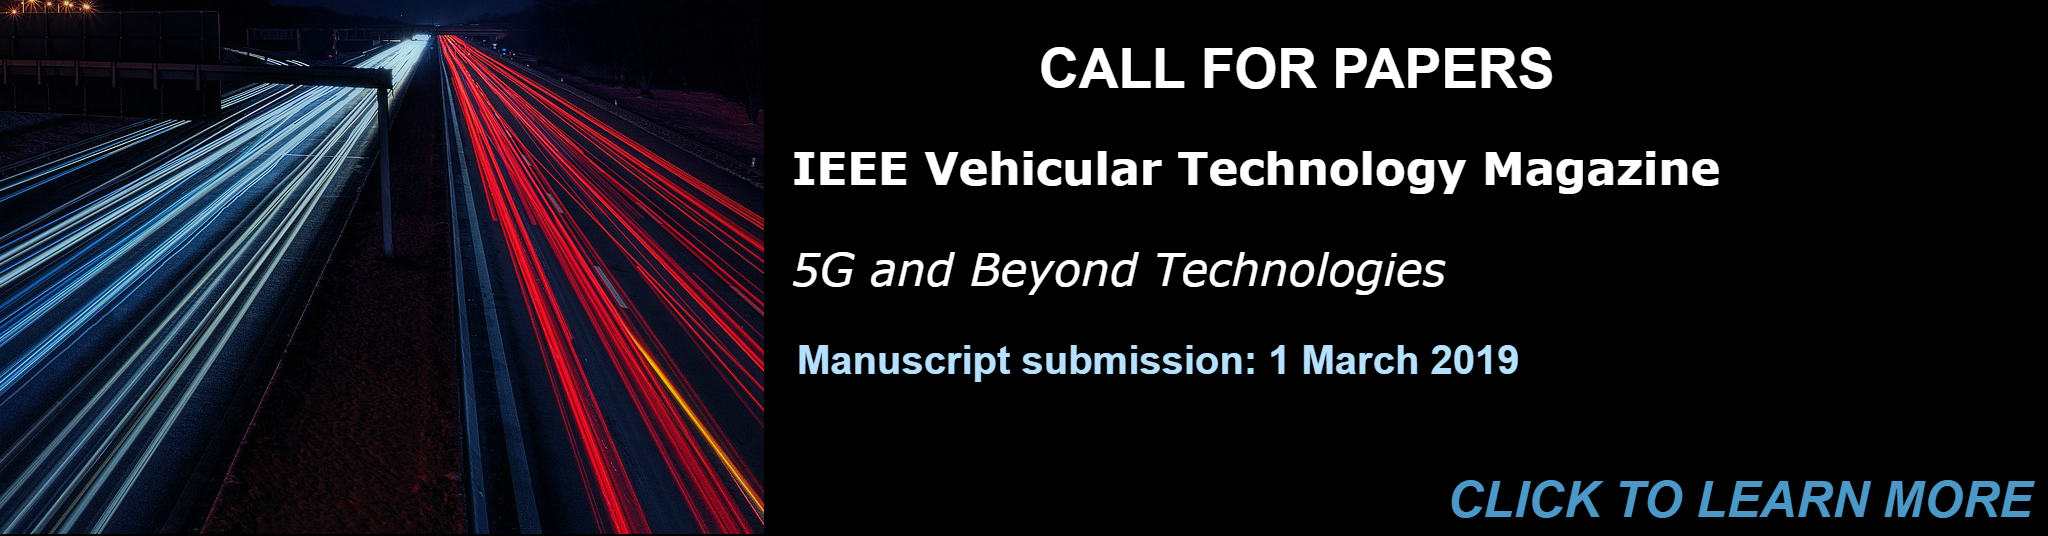 Call for Papers Vehicular Technology Magazine